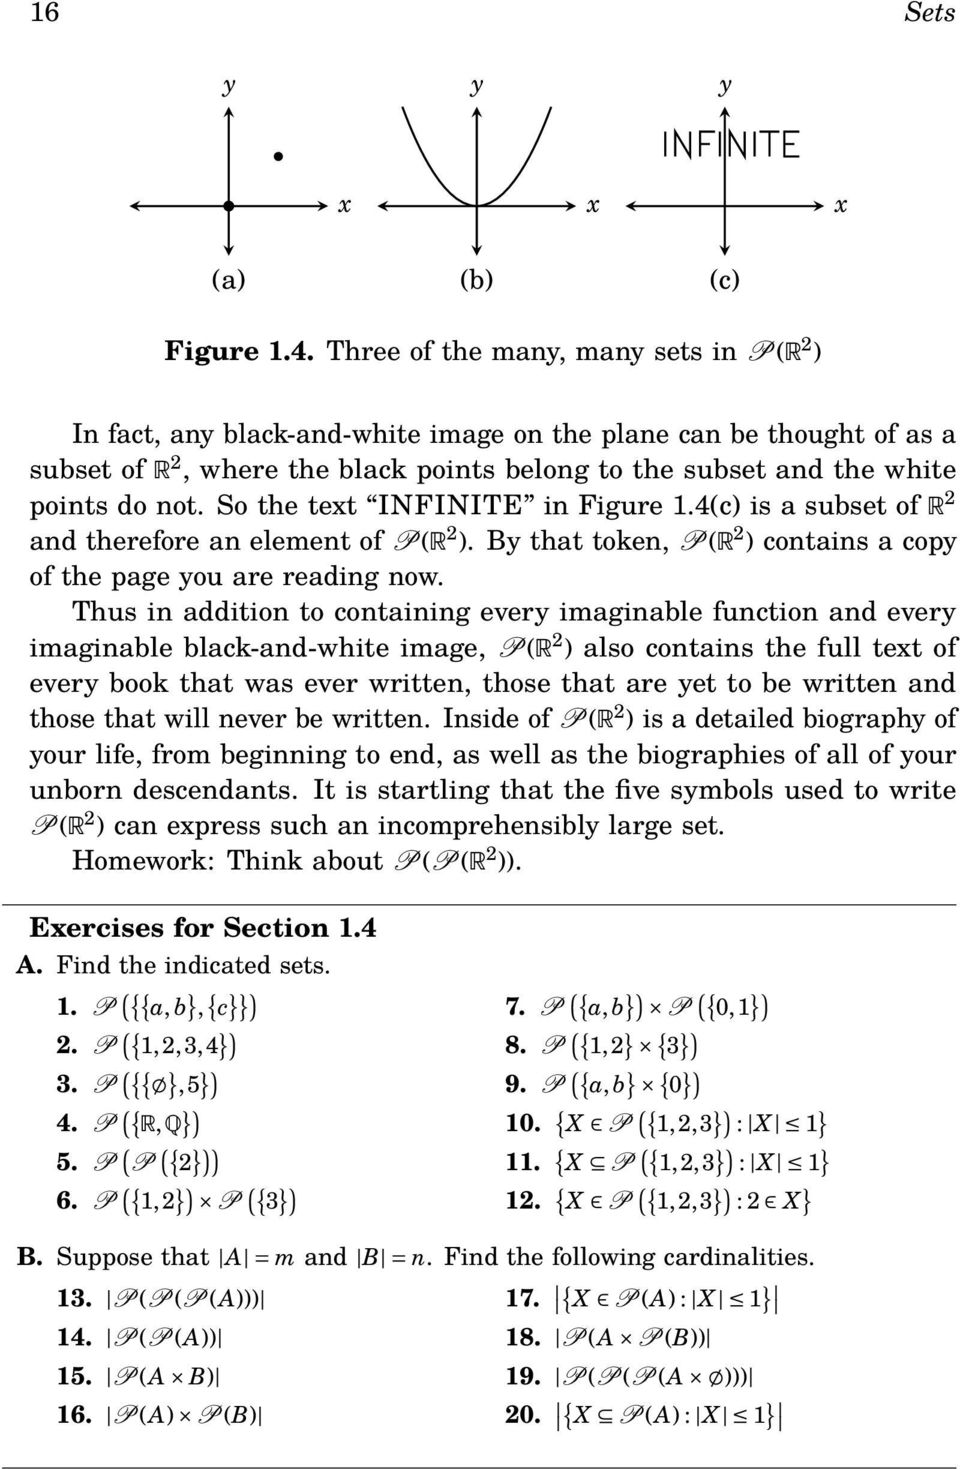 So the text INFINITE in Figure 1.4(c) is a subset of R 2 and therefore an element of P(R 2 ). By that token, P(R 2 ) contains a copy of the page you are reading now.